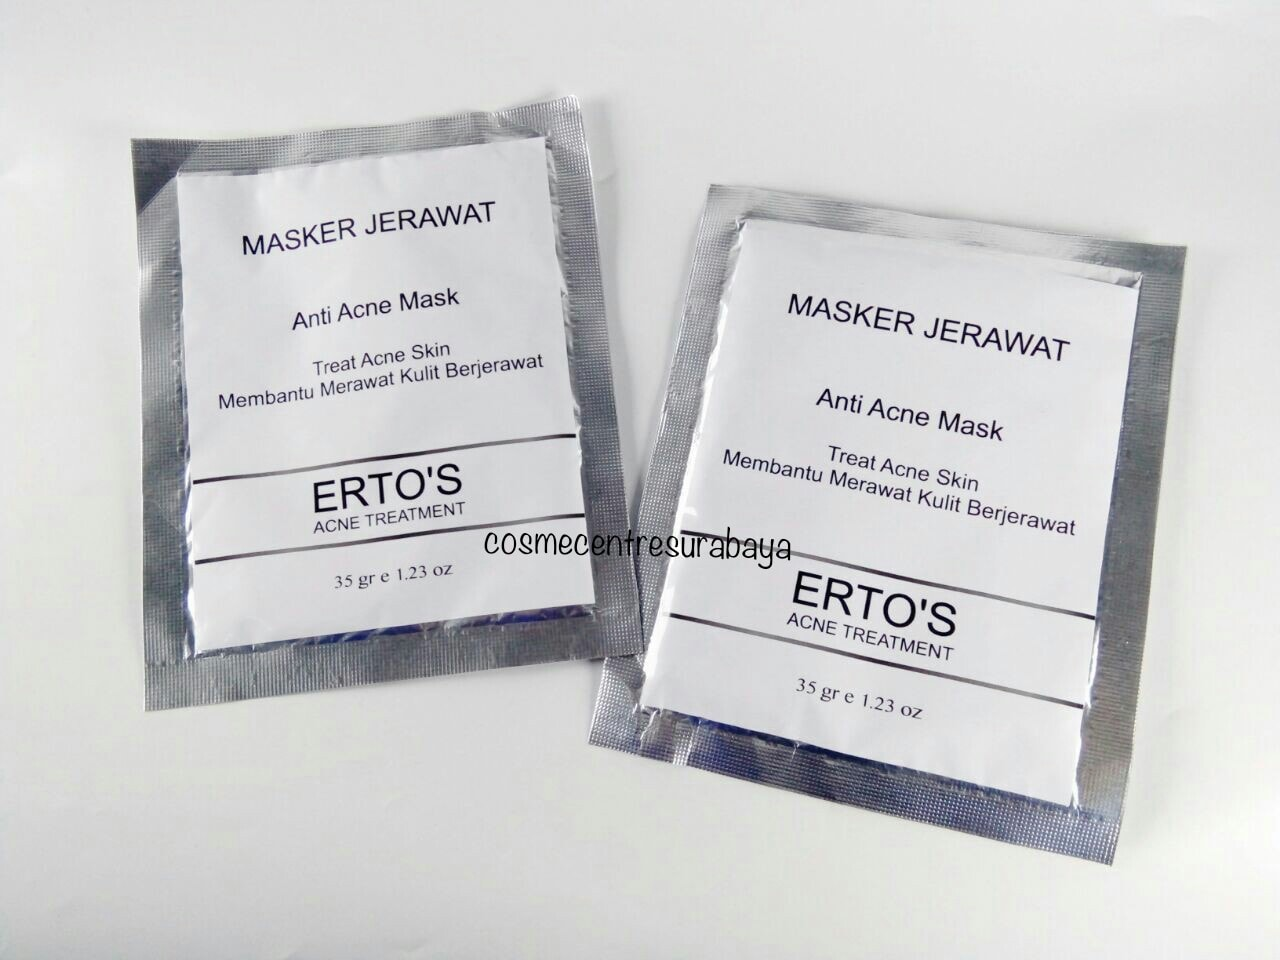 Jual Ertos Acne Treatment Masker Jerawat Bpom Cosme Centre Anti Mask By Surabaya Tokopedia